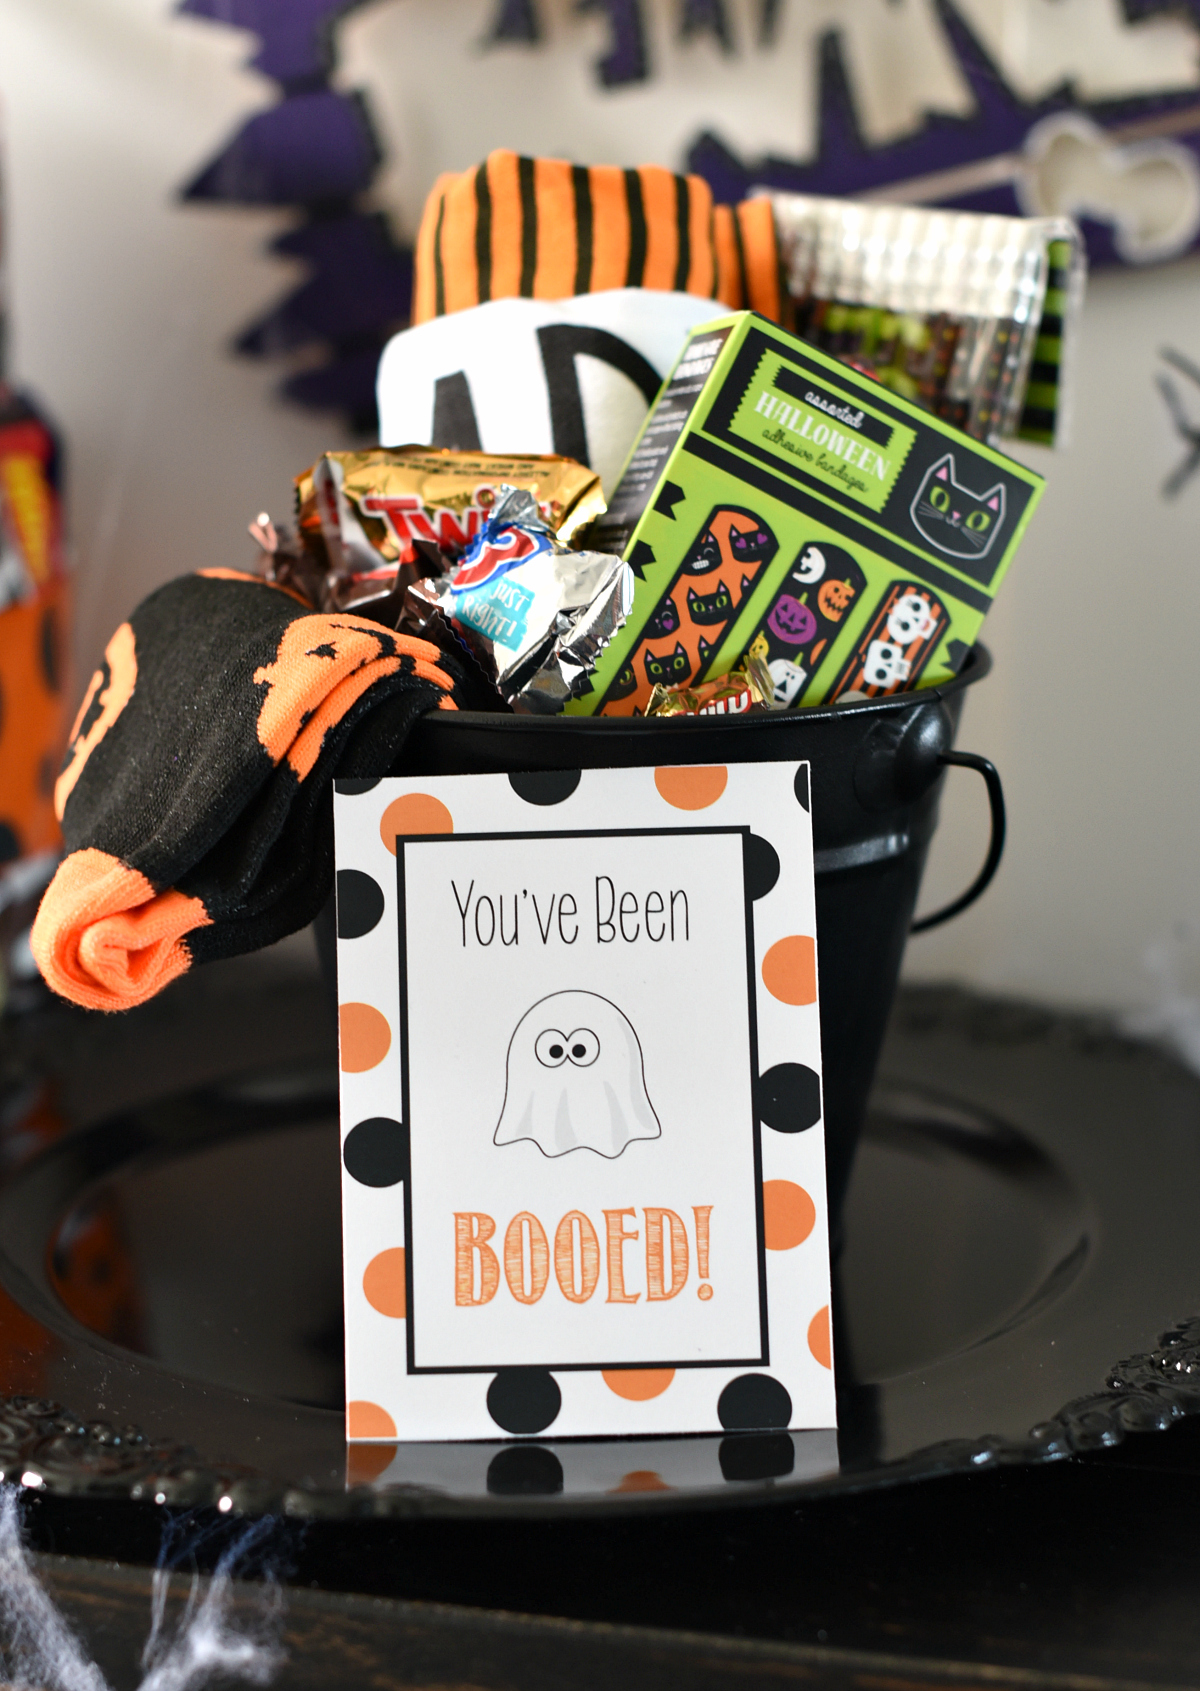 image about You've Been Booed Free Printable named Youve Been Booed - Adorable Cost-free Printable Tags Halloween